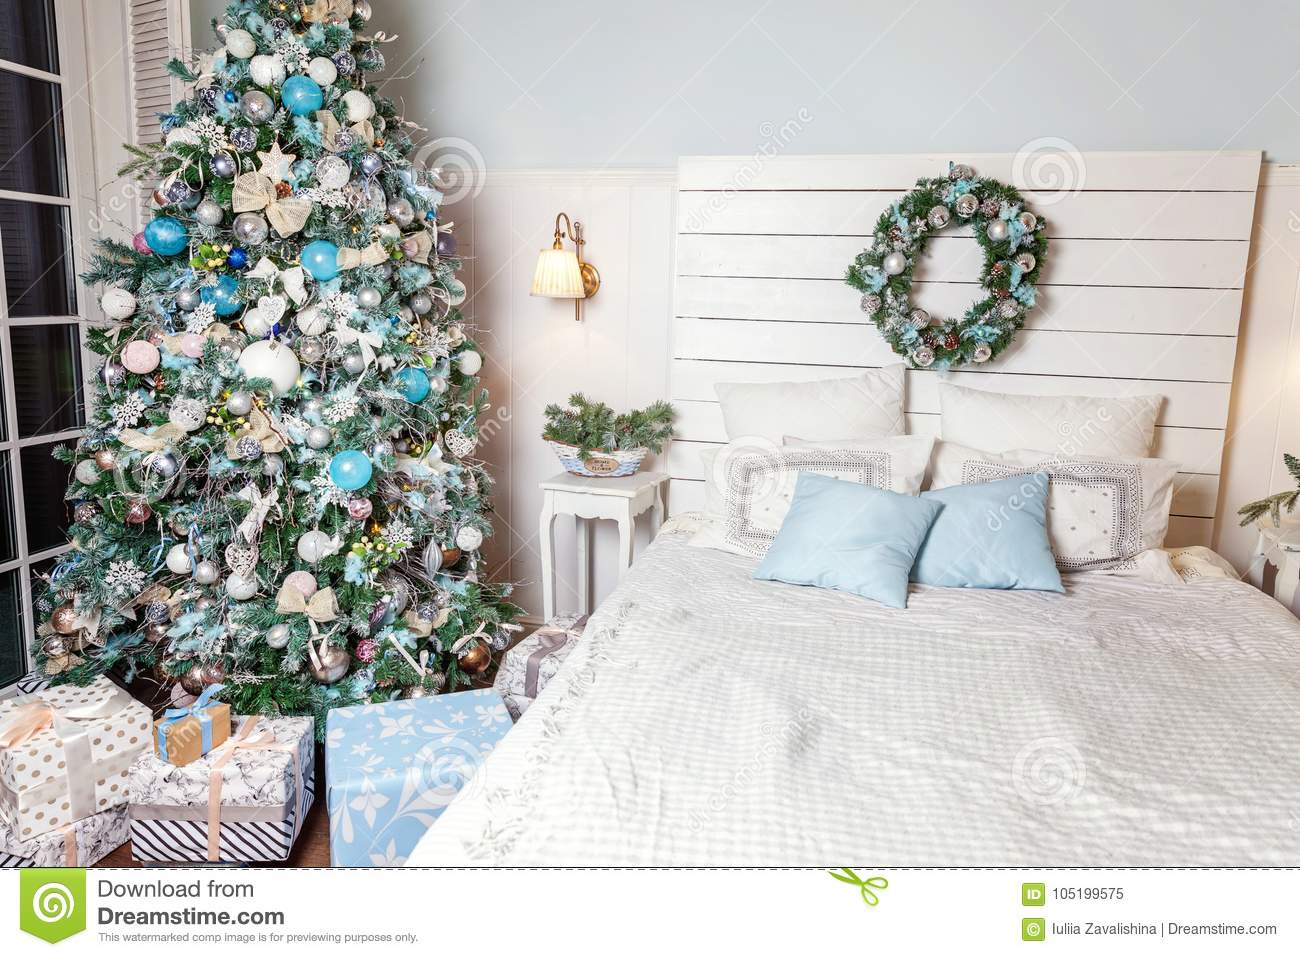 download christmas tree with white blue and silver decorations stock image image of fire - White Christmas Tree With Blue And Silver Decorations